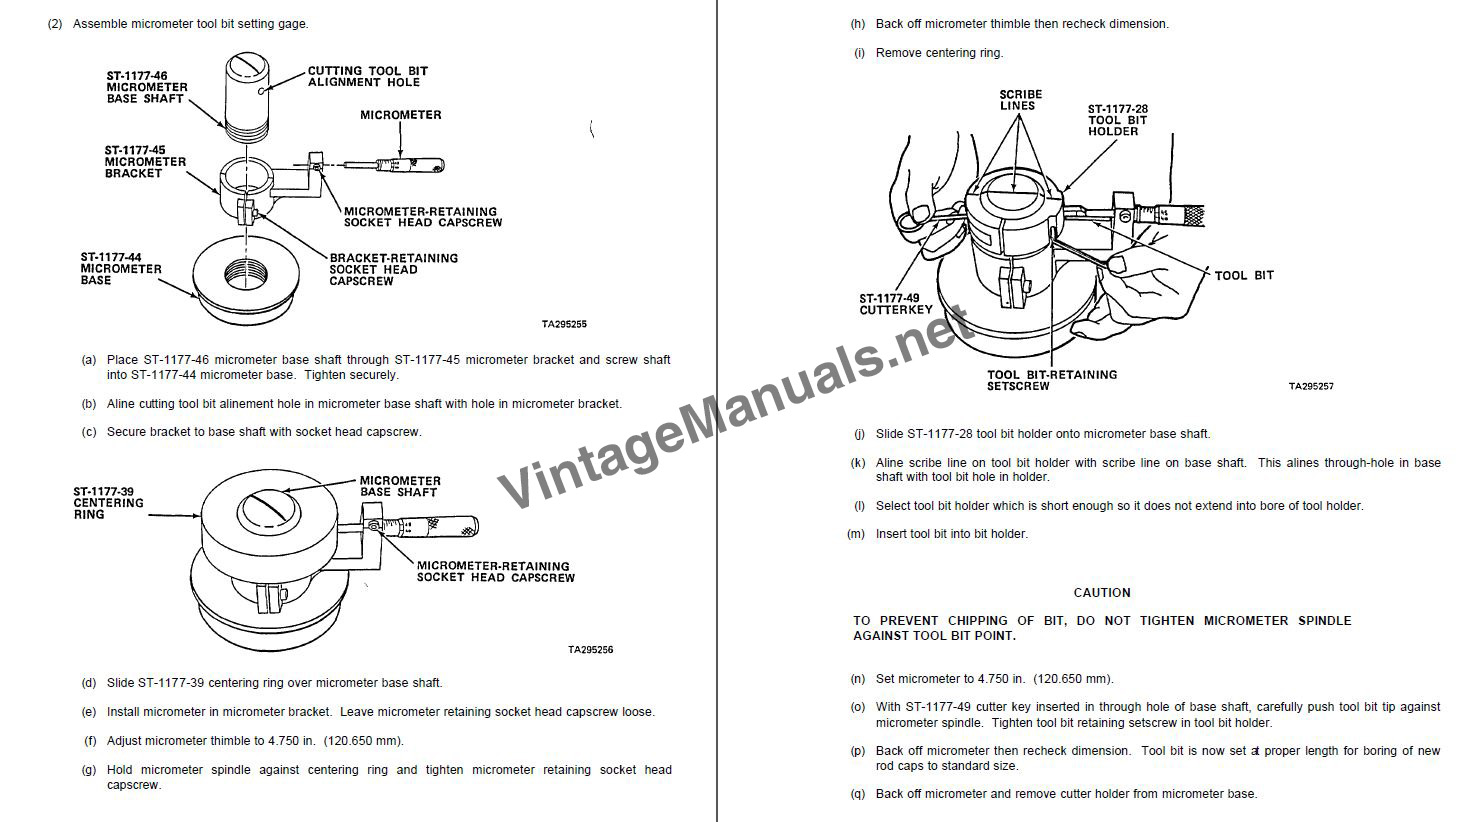 HEADQUARTERS M915A1 Technical Manual